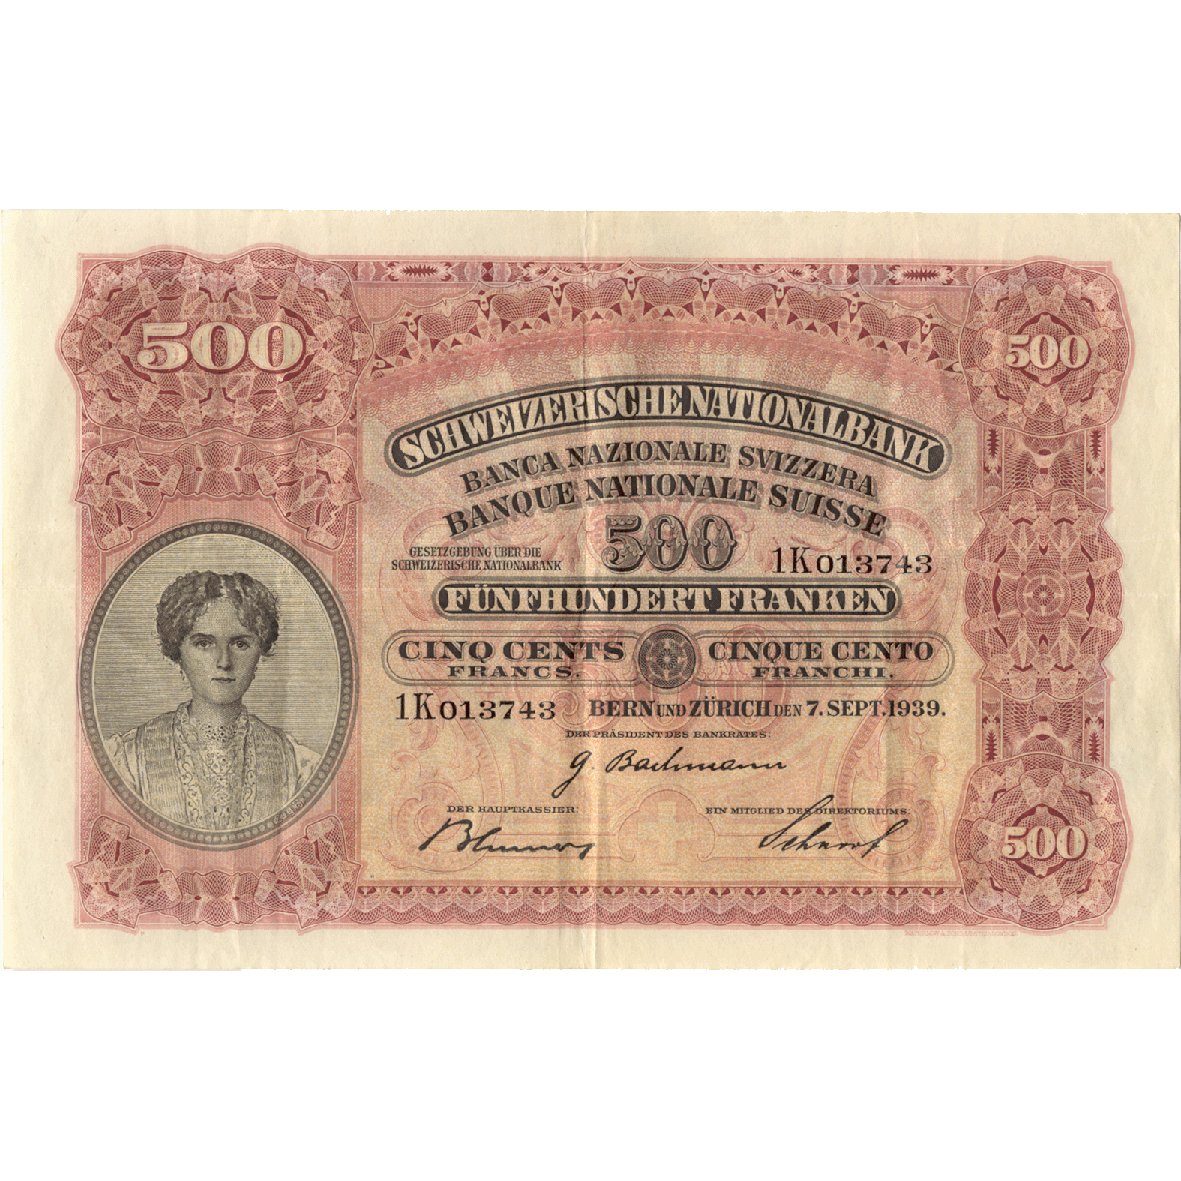 Swiss Confederation, 500 Francs (2nd Banknote Series, in Circulation 1911-1980) (obverse)